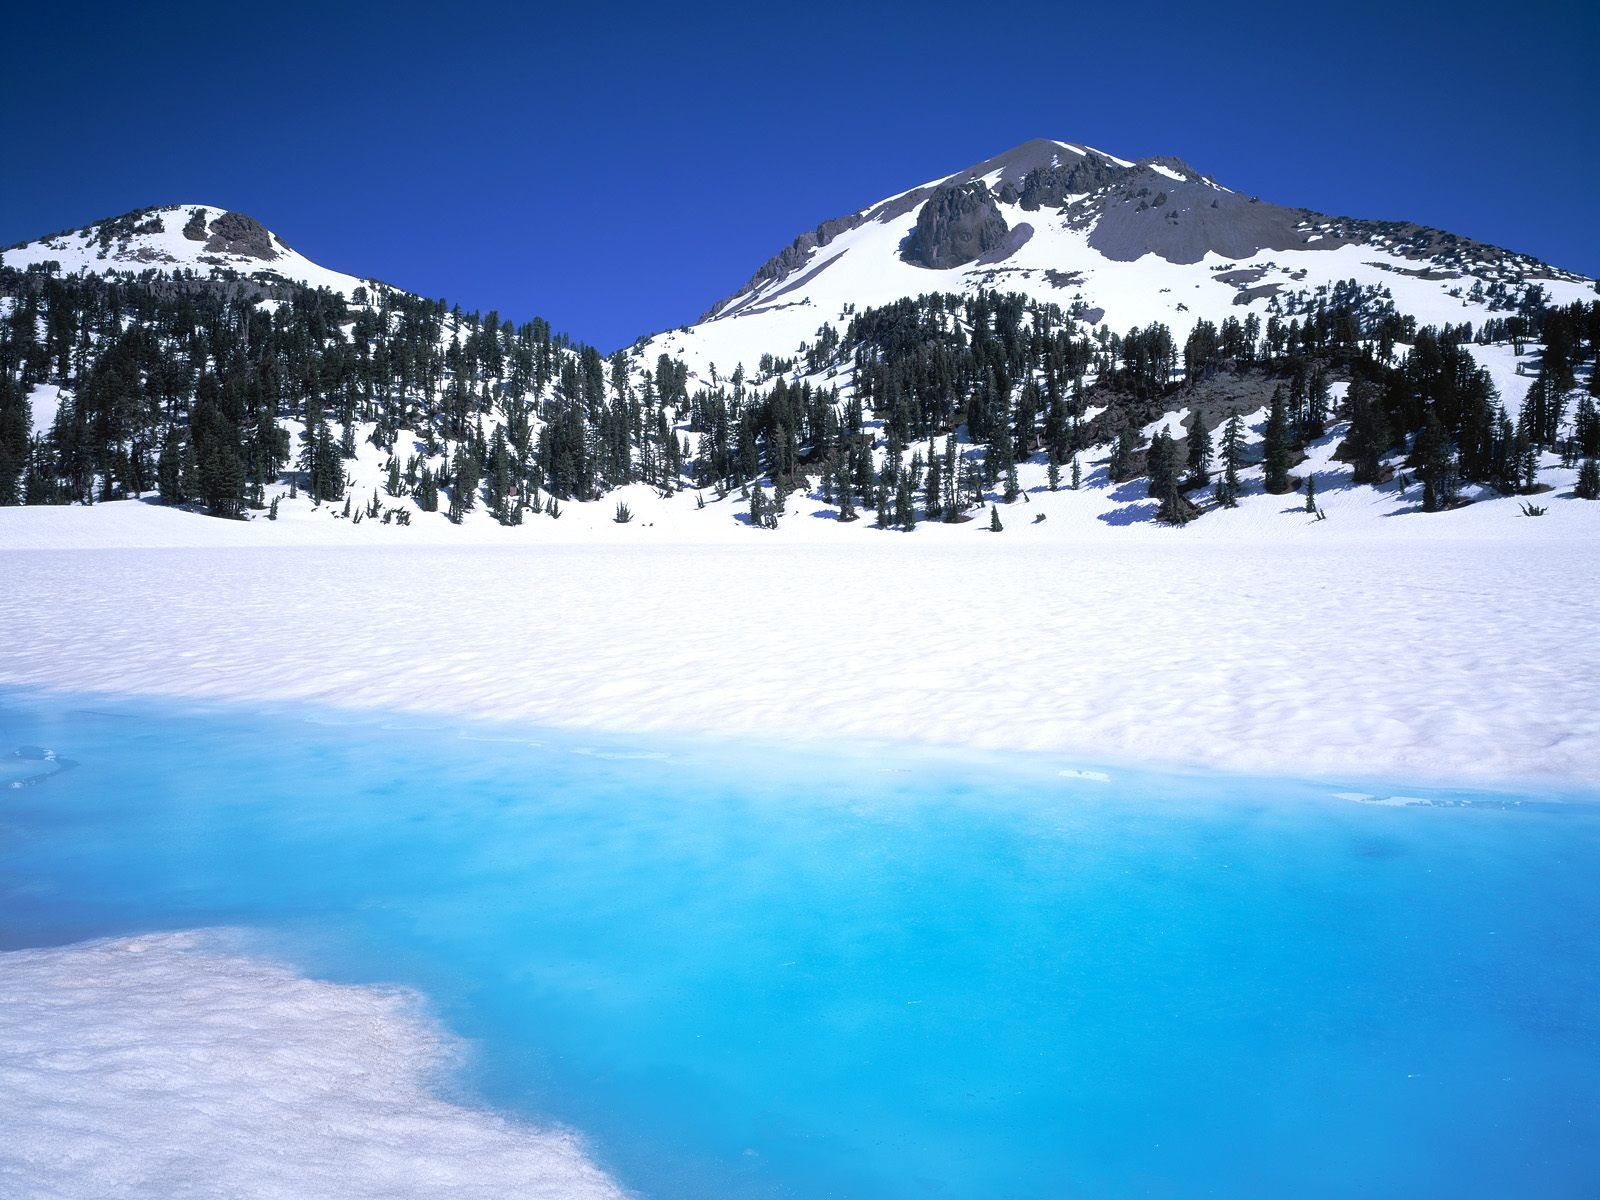 Frozen lake in the mountains